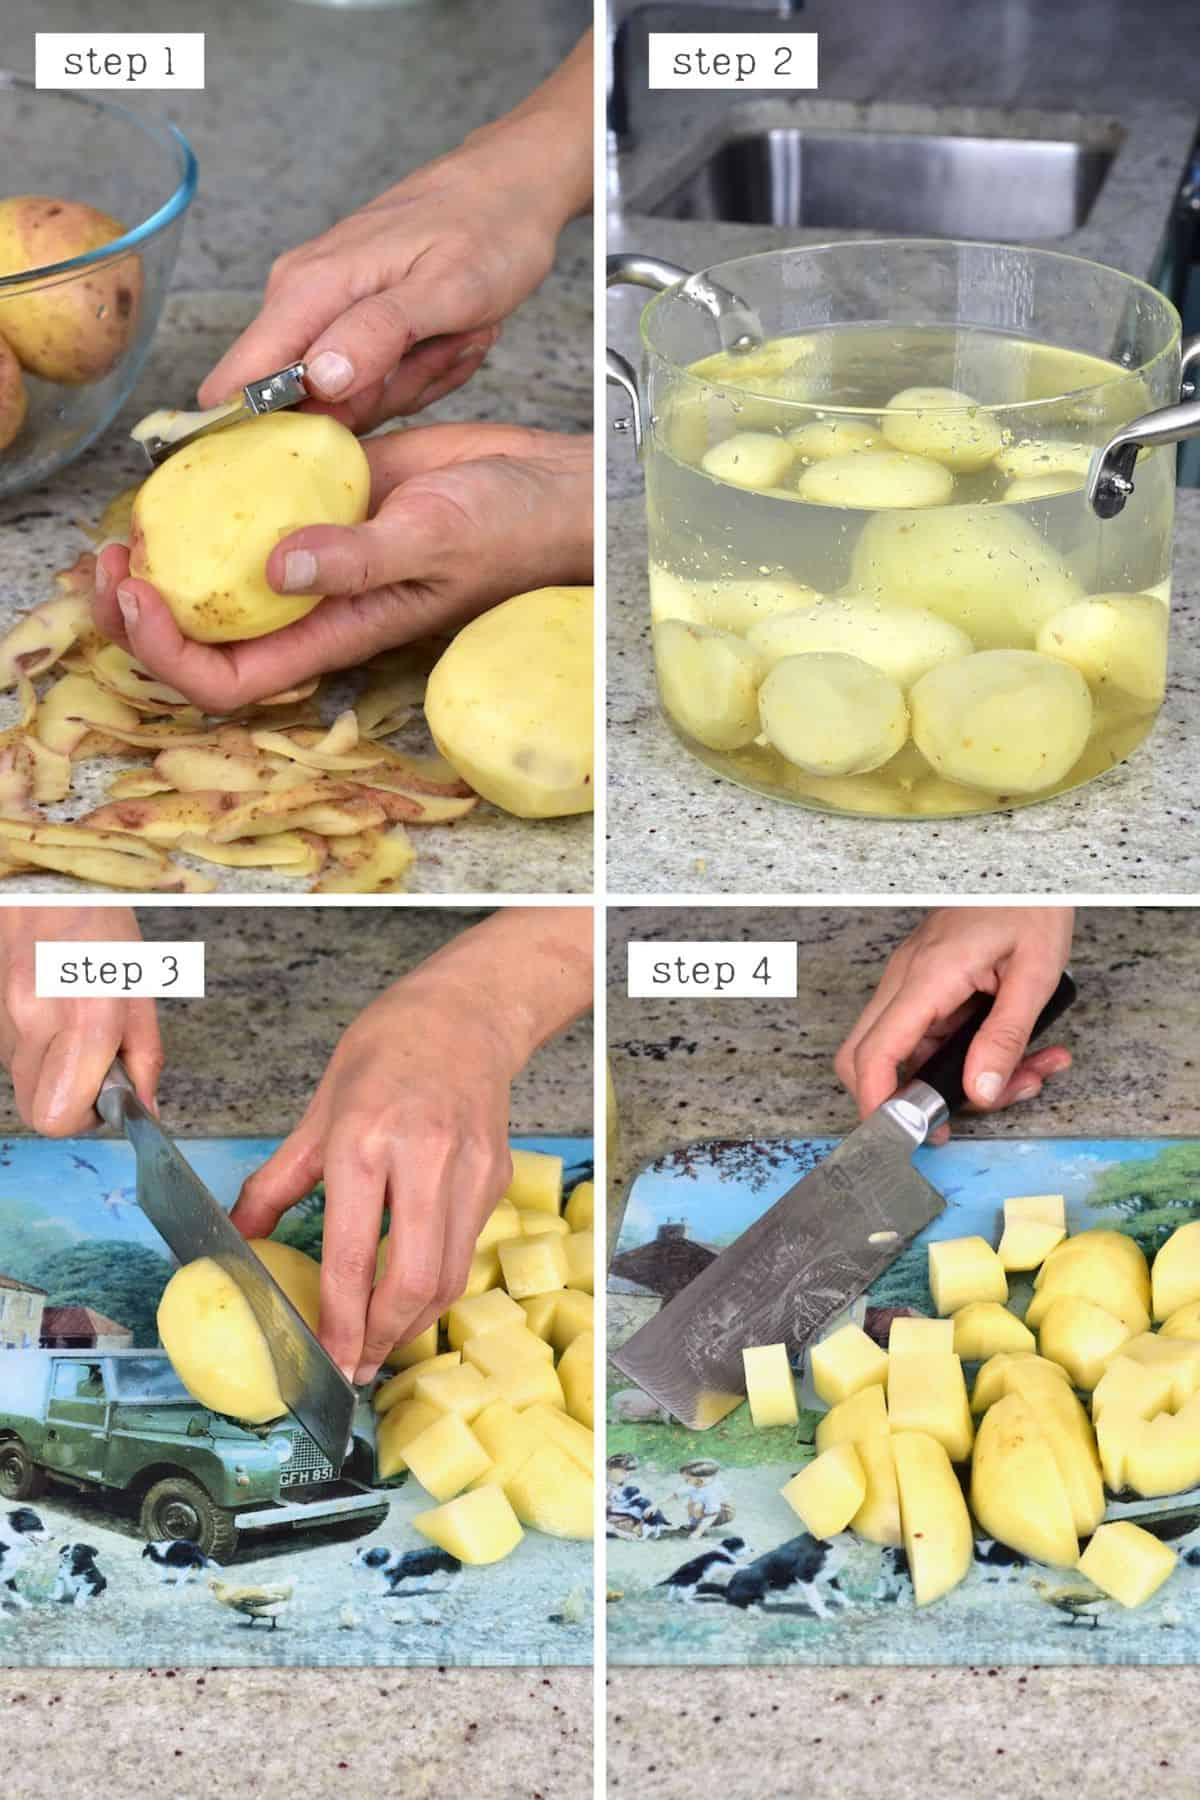 Peeling and chopping potatoes for boiling